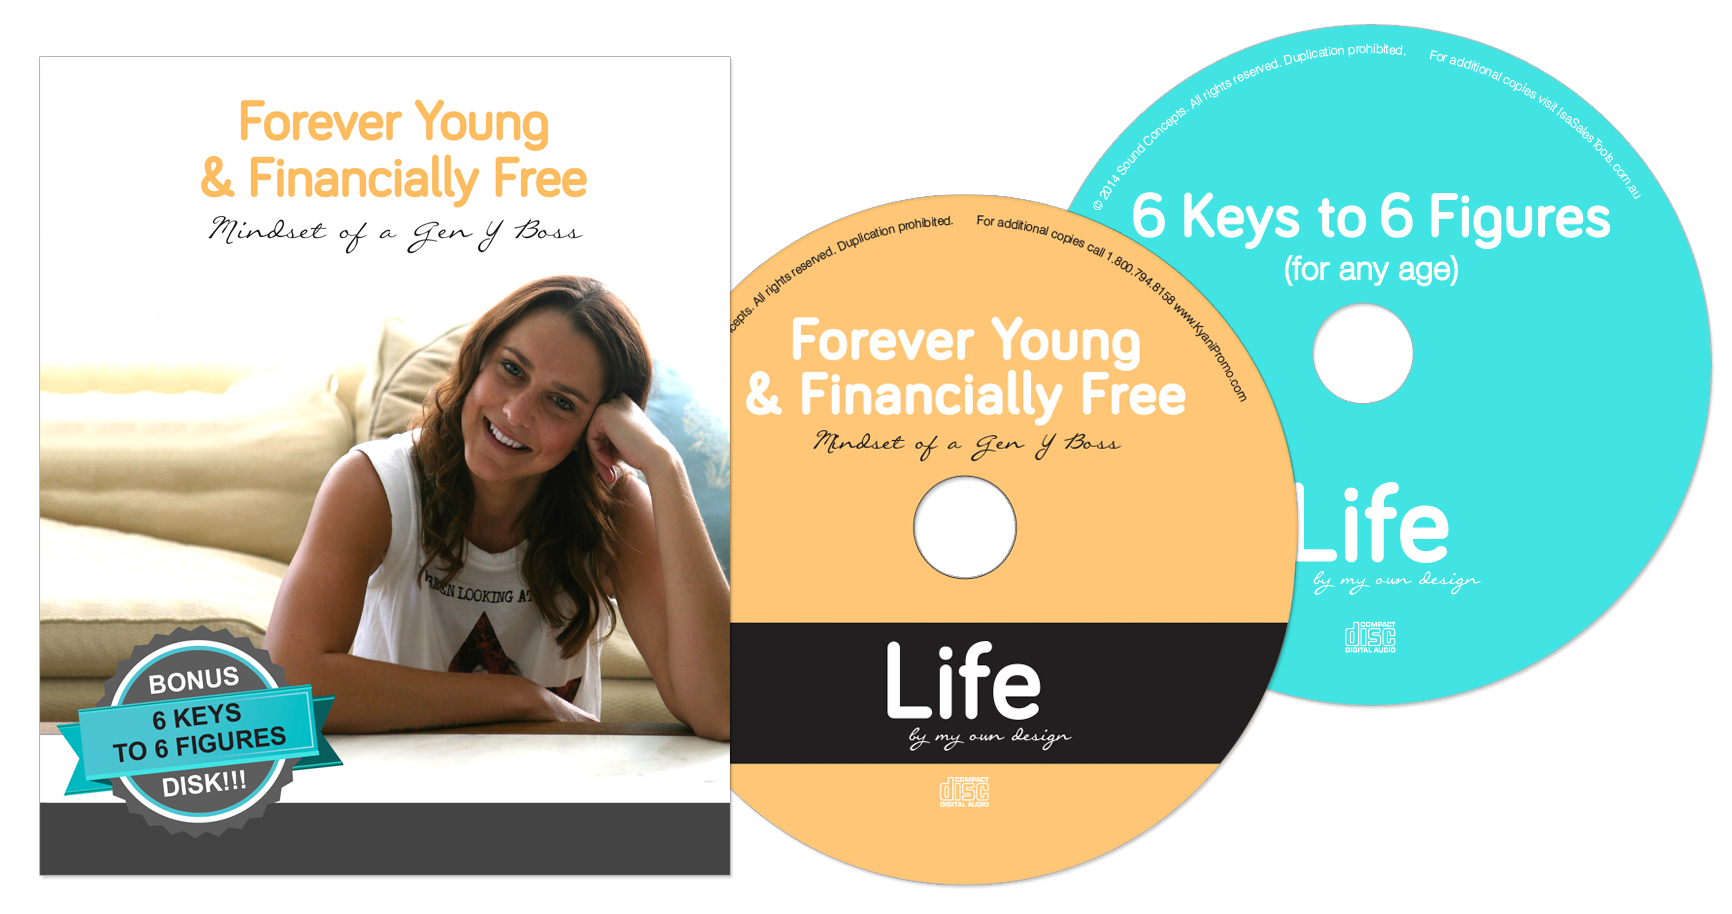 ForeverYoungFinanciallyFree.png